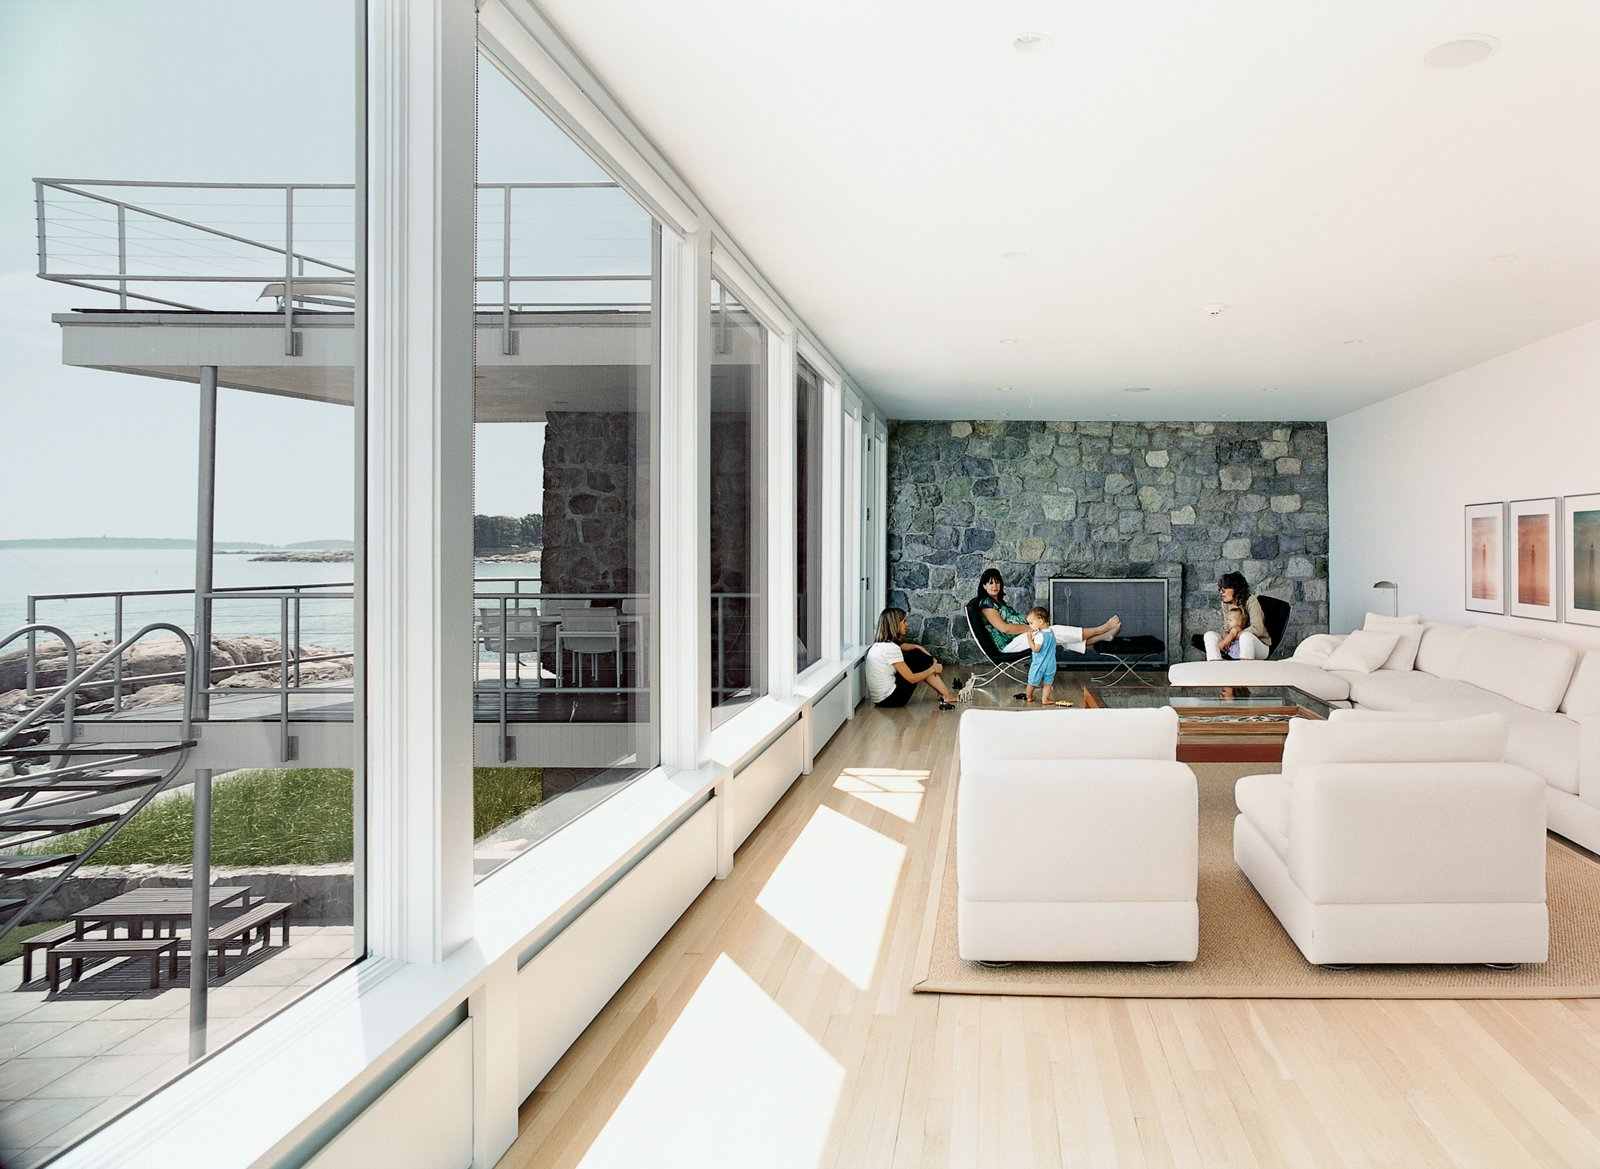 """Early on, the house's simplicity had great appeal to Jan Sasseen, the current owner. From walls to rugs to furniture, """"pretty much everything is white,"""" she says. """"When I was decorating, I picked the most basic things I could find. Nothing had details or frills.""""  Photo 5 of 8 in Bauhaus by the Sea"""